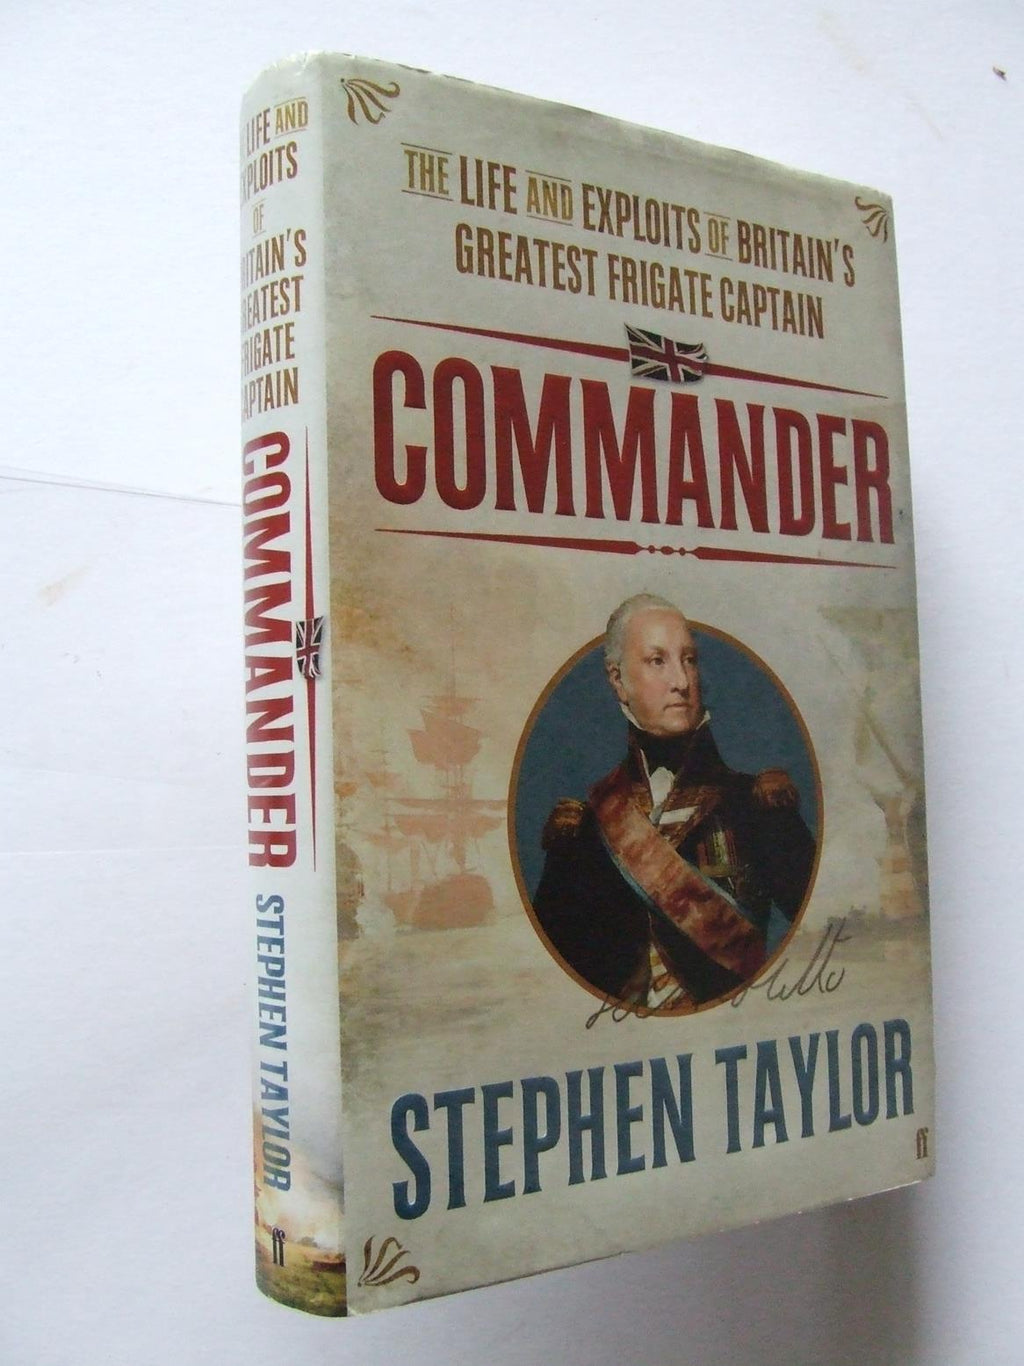 Commander, the life and exploits of Britain's greatest frigate captain